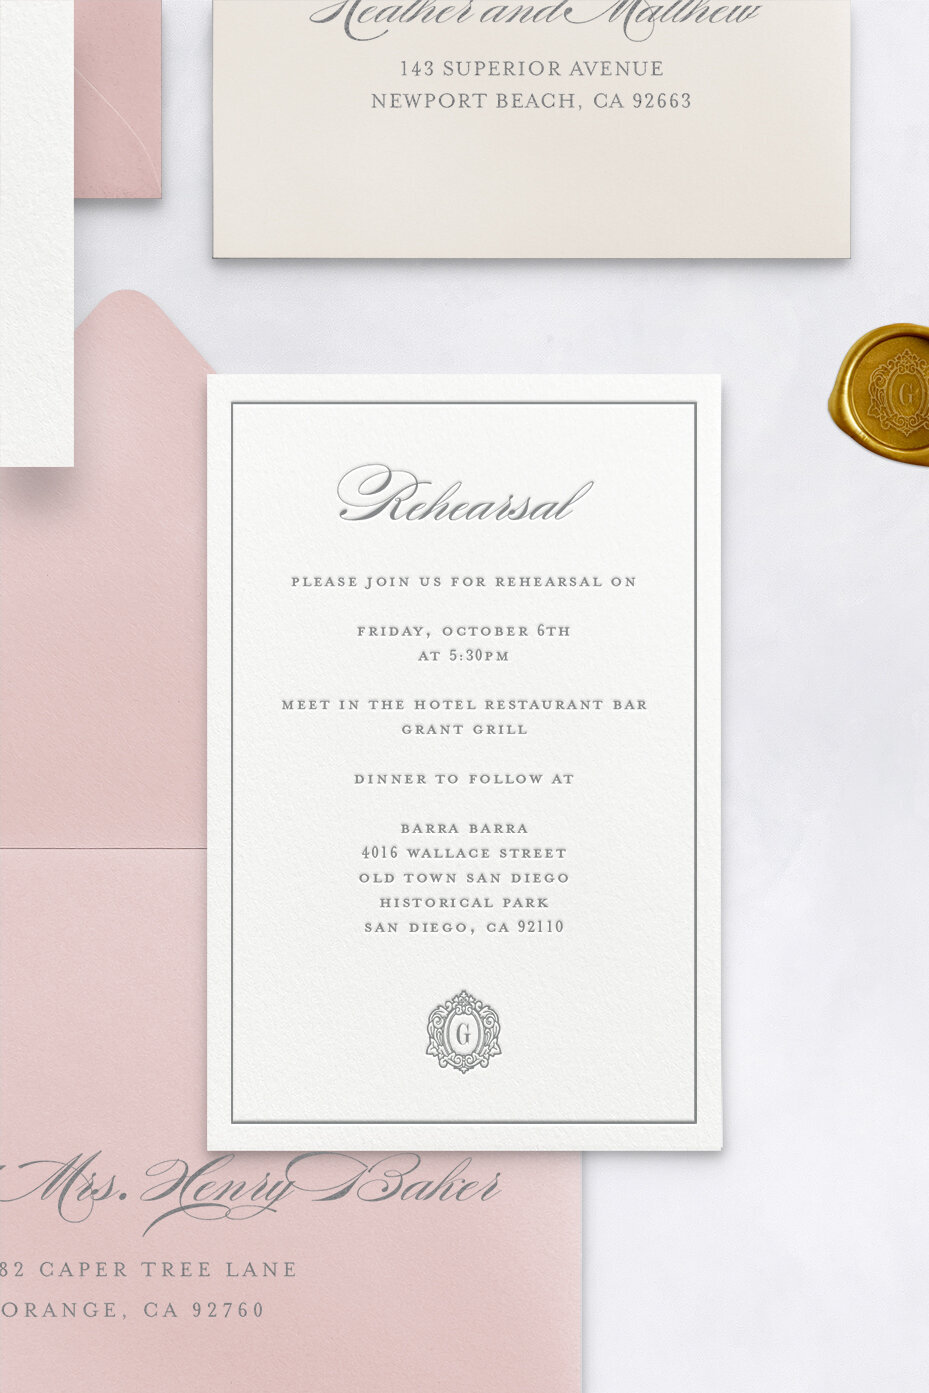 broadway_wedding_invitations_papermintpress_rehearsal